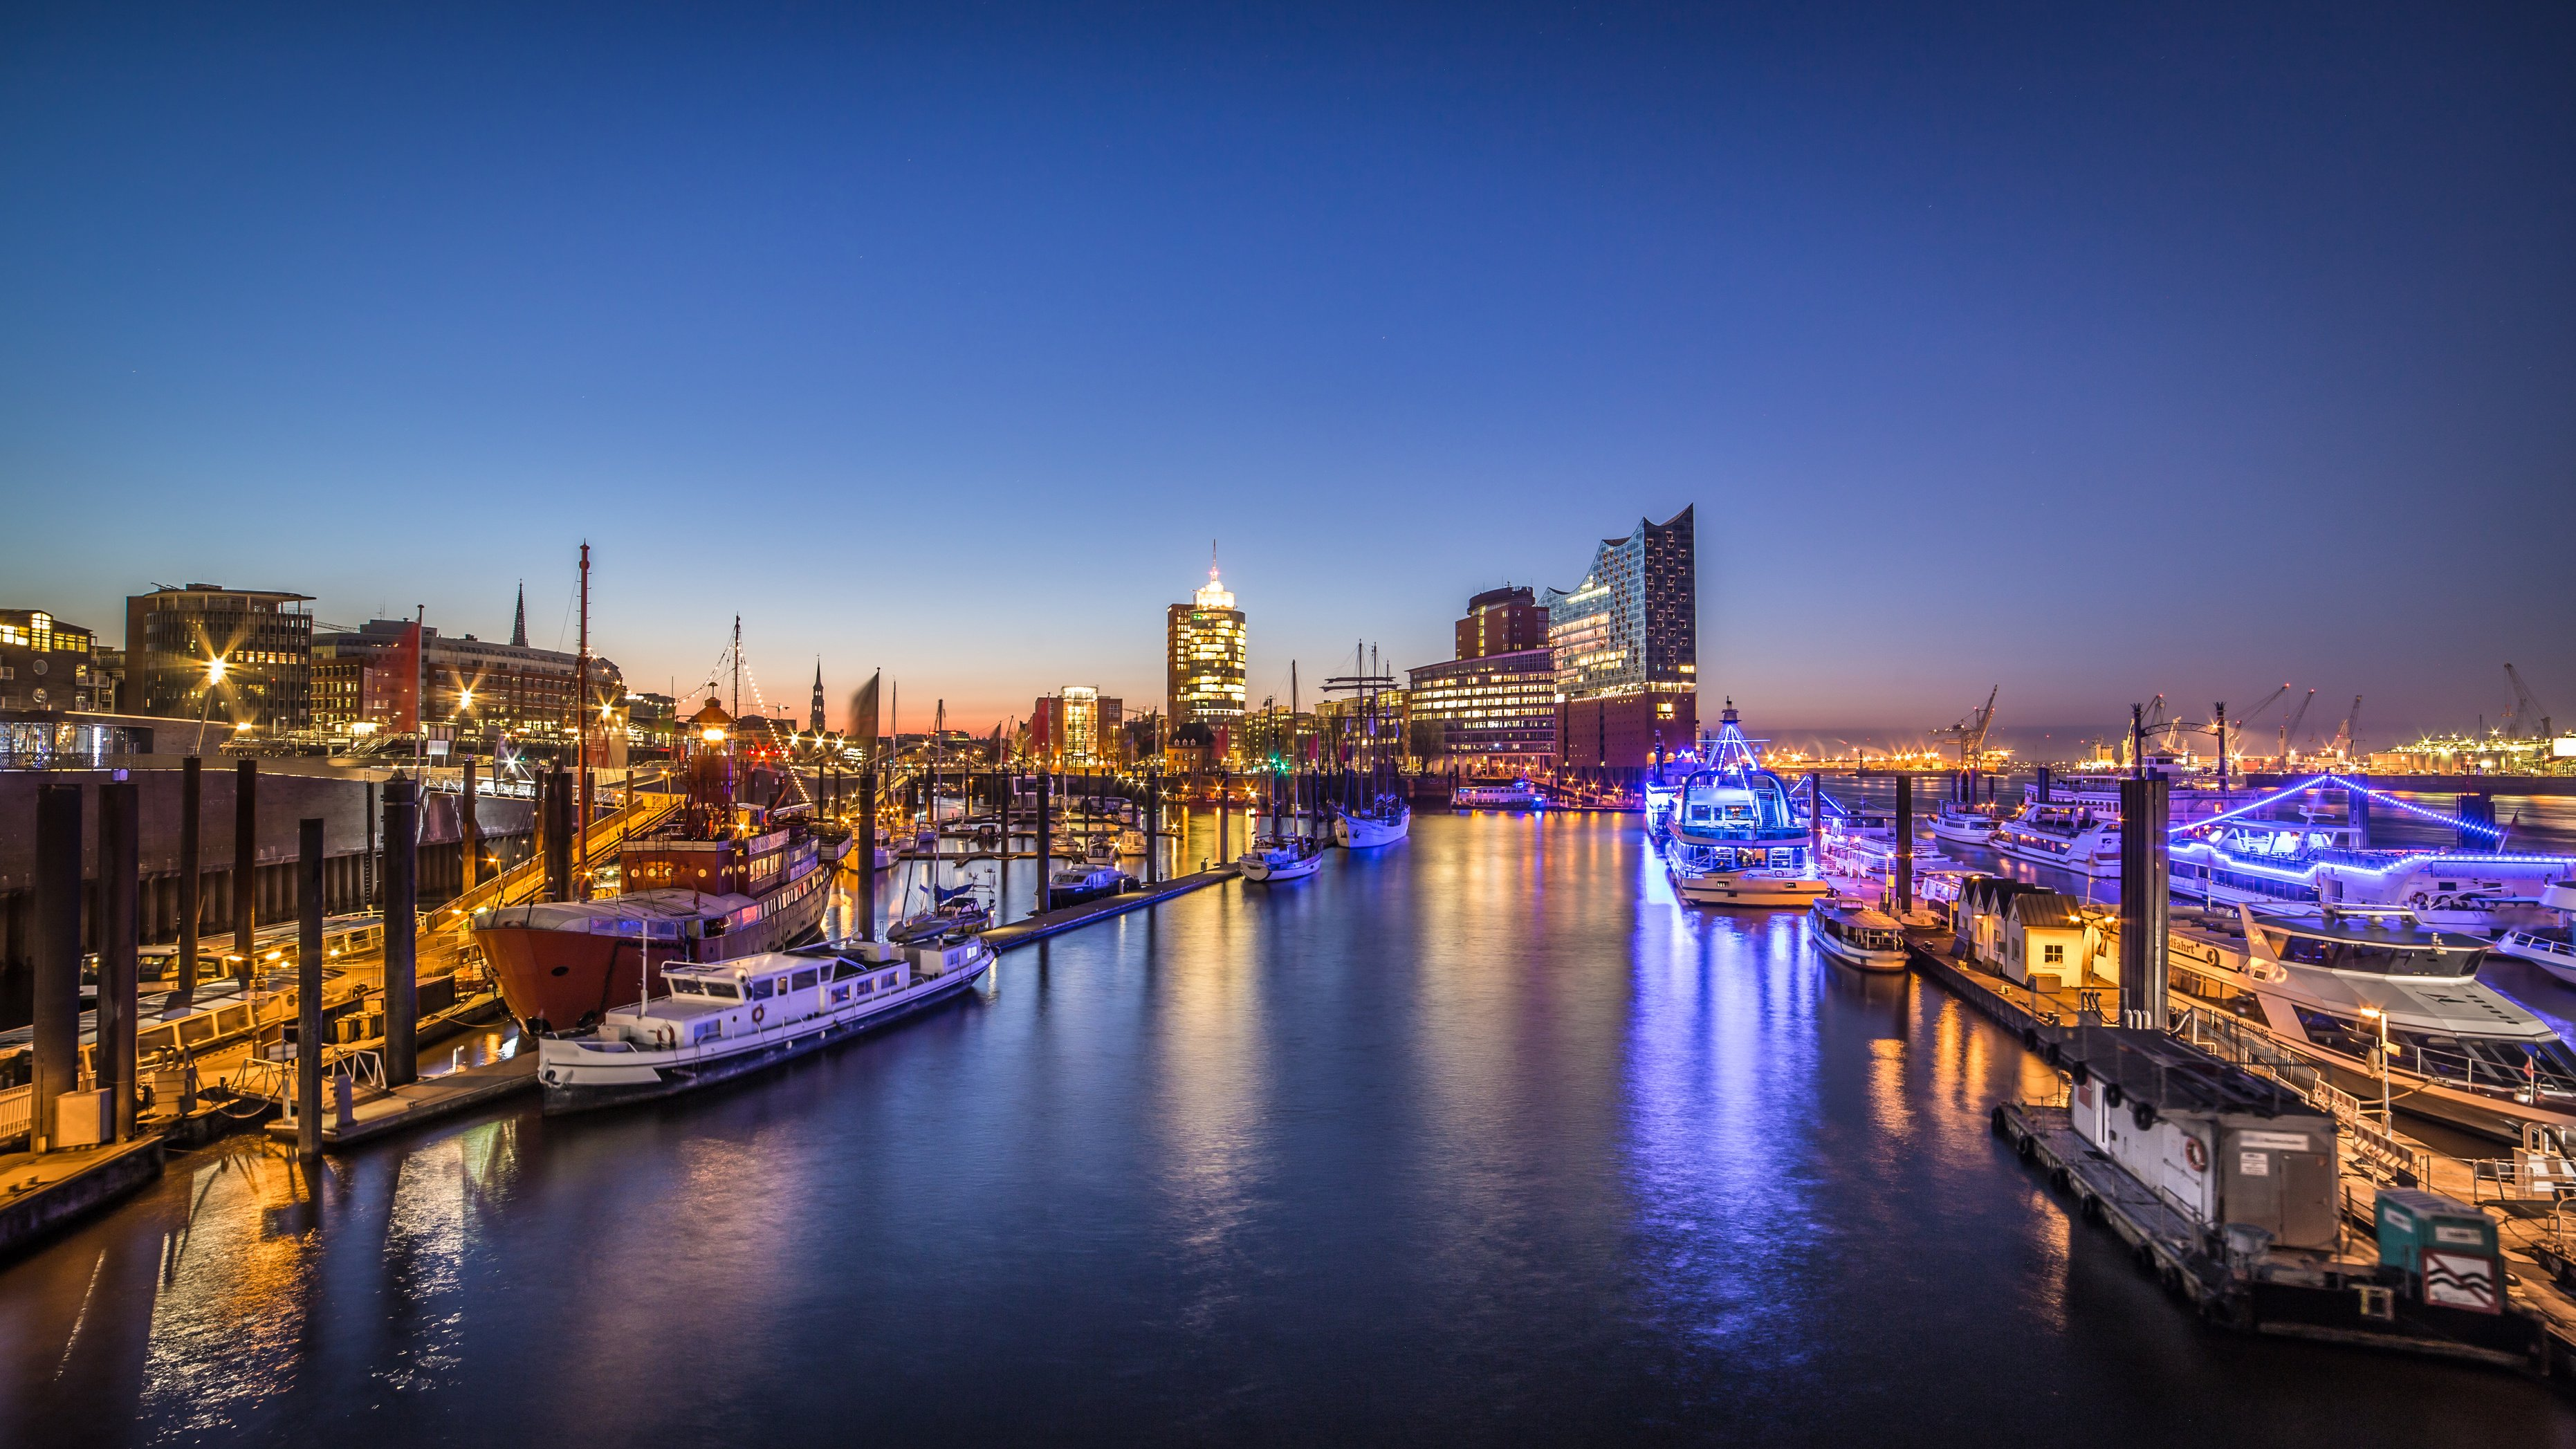 Hamburger-Bord-Party in Hamburg, Party, 18.08.2018, MS Hamburg / MS Hanseatic - Tickets - Copyright powell83 / fotolia